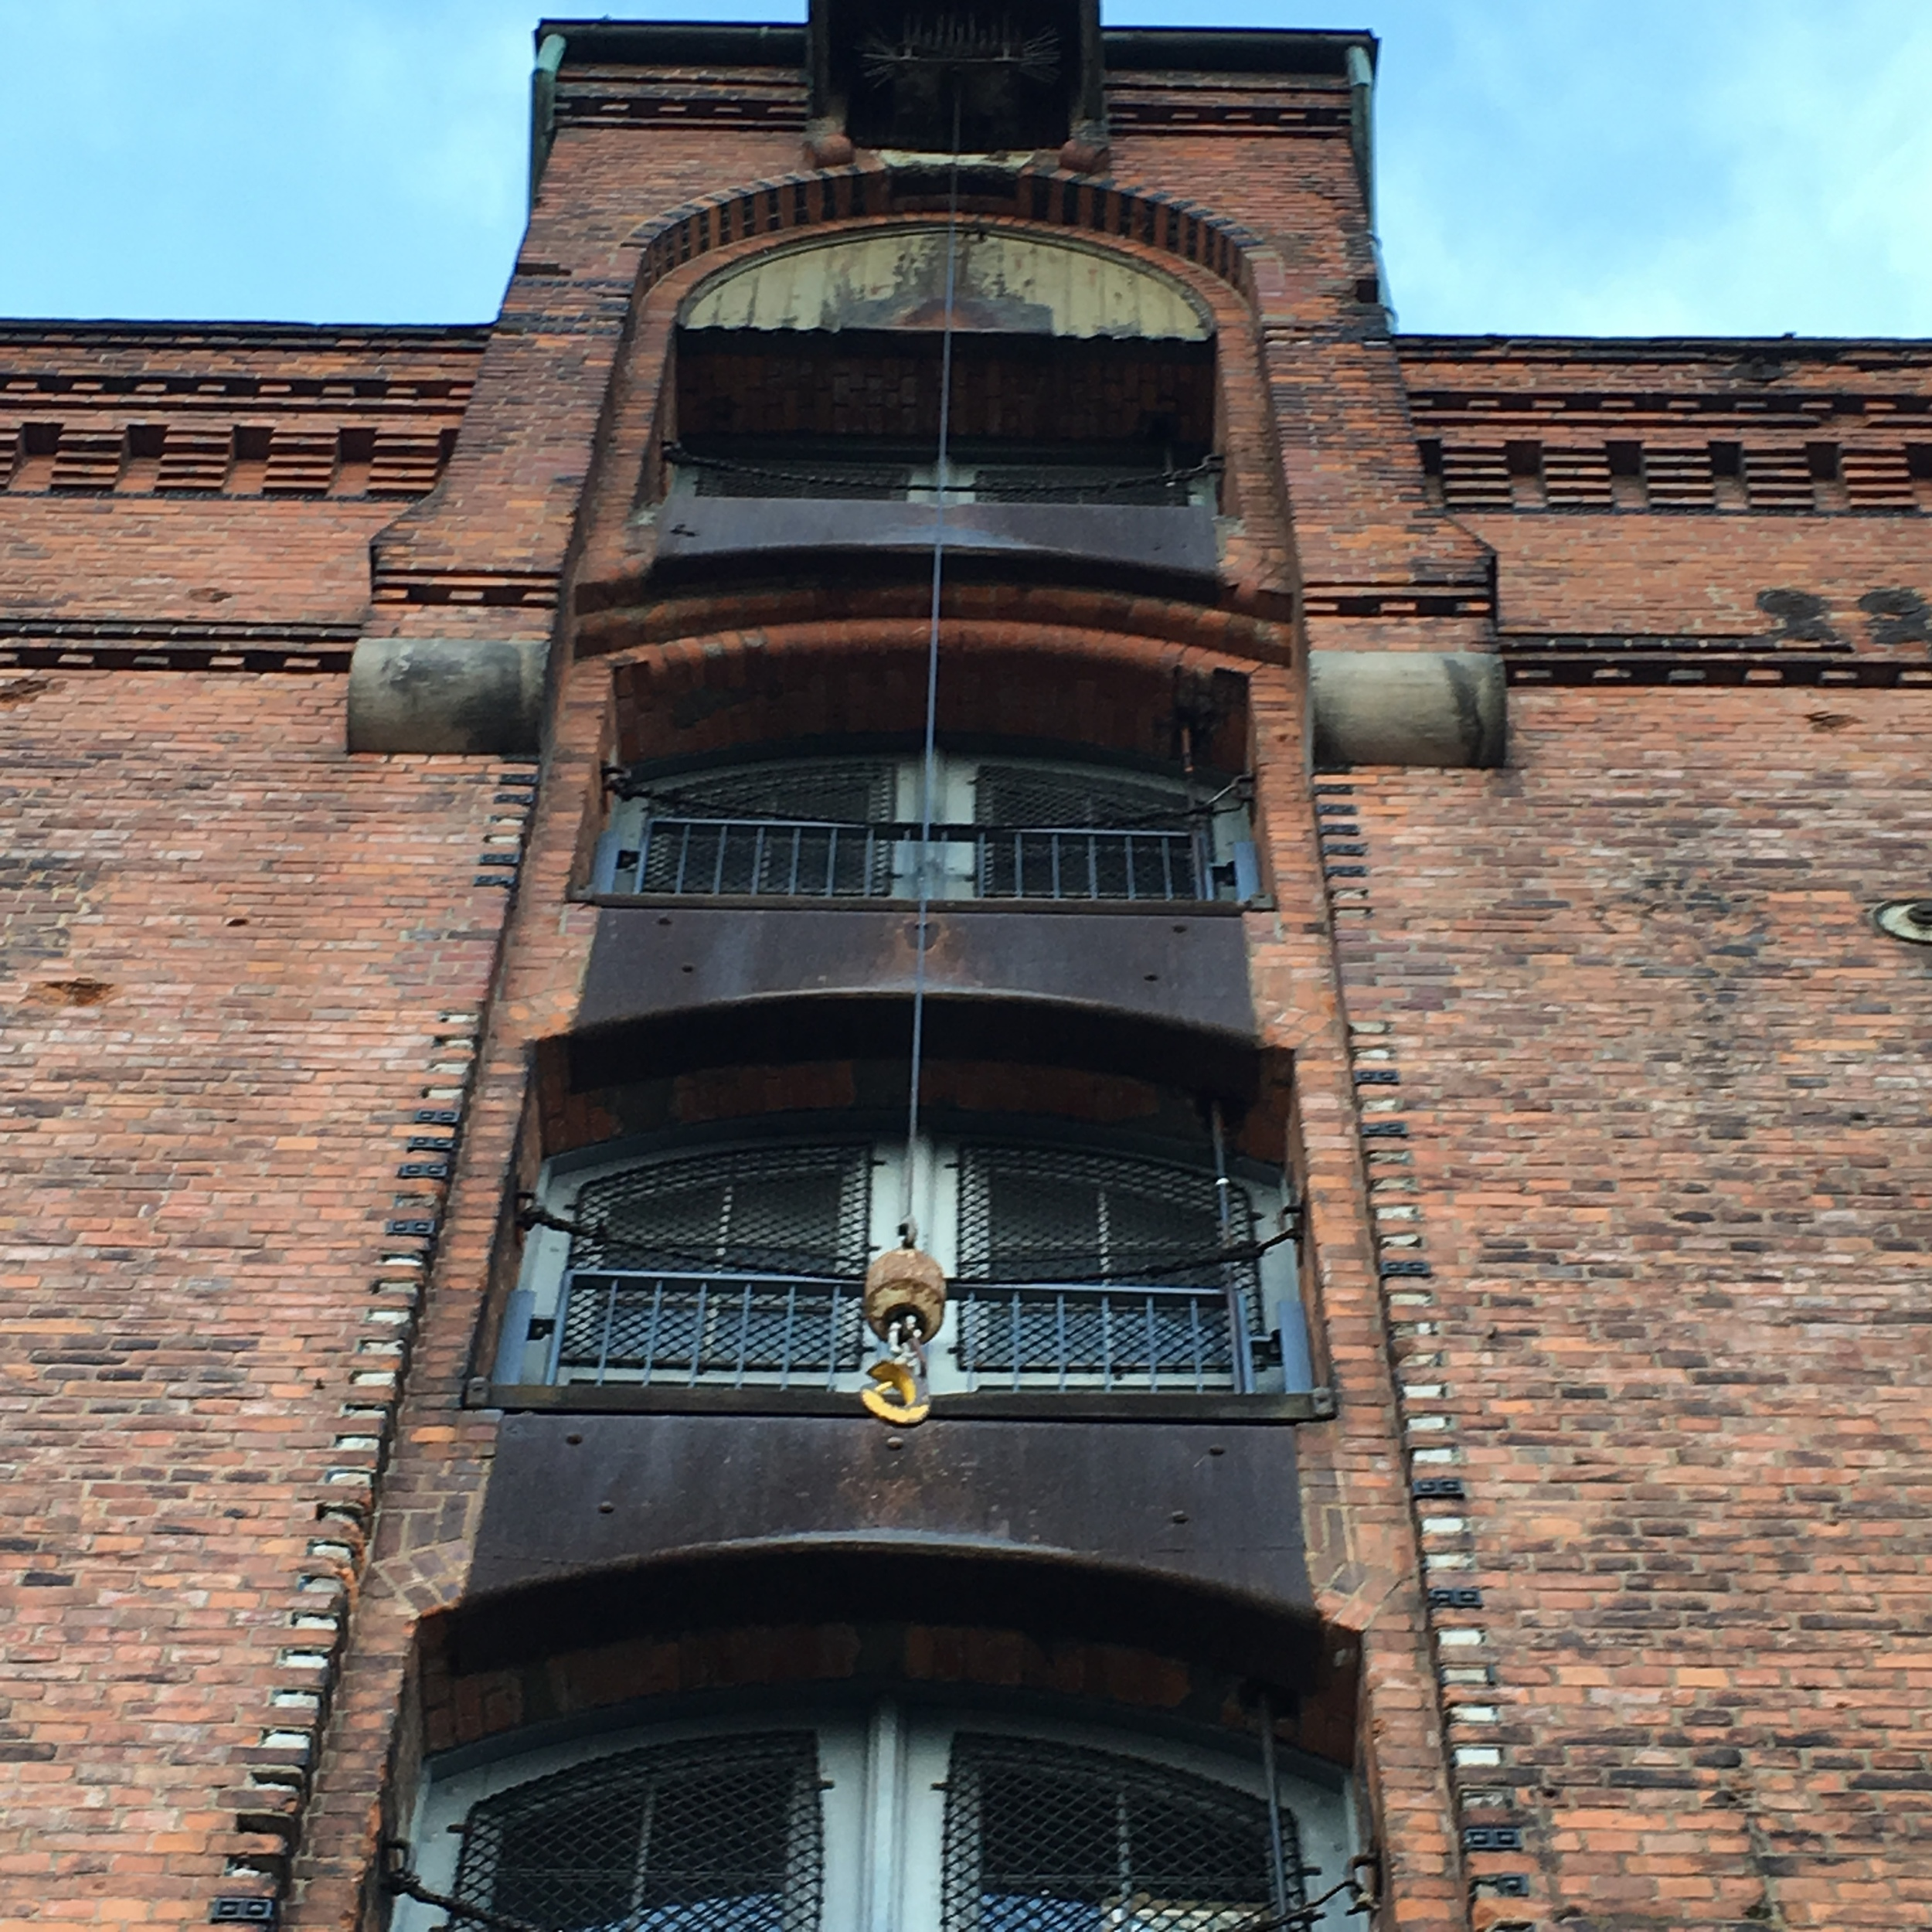 Frontside of a building in Spreicherstadt where you can appreciate the hooks used to upload goods for storage. Photo: Bruny Nieves